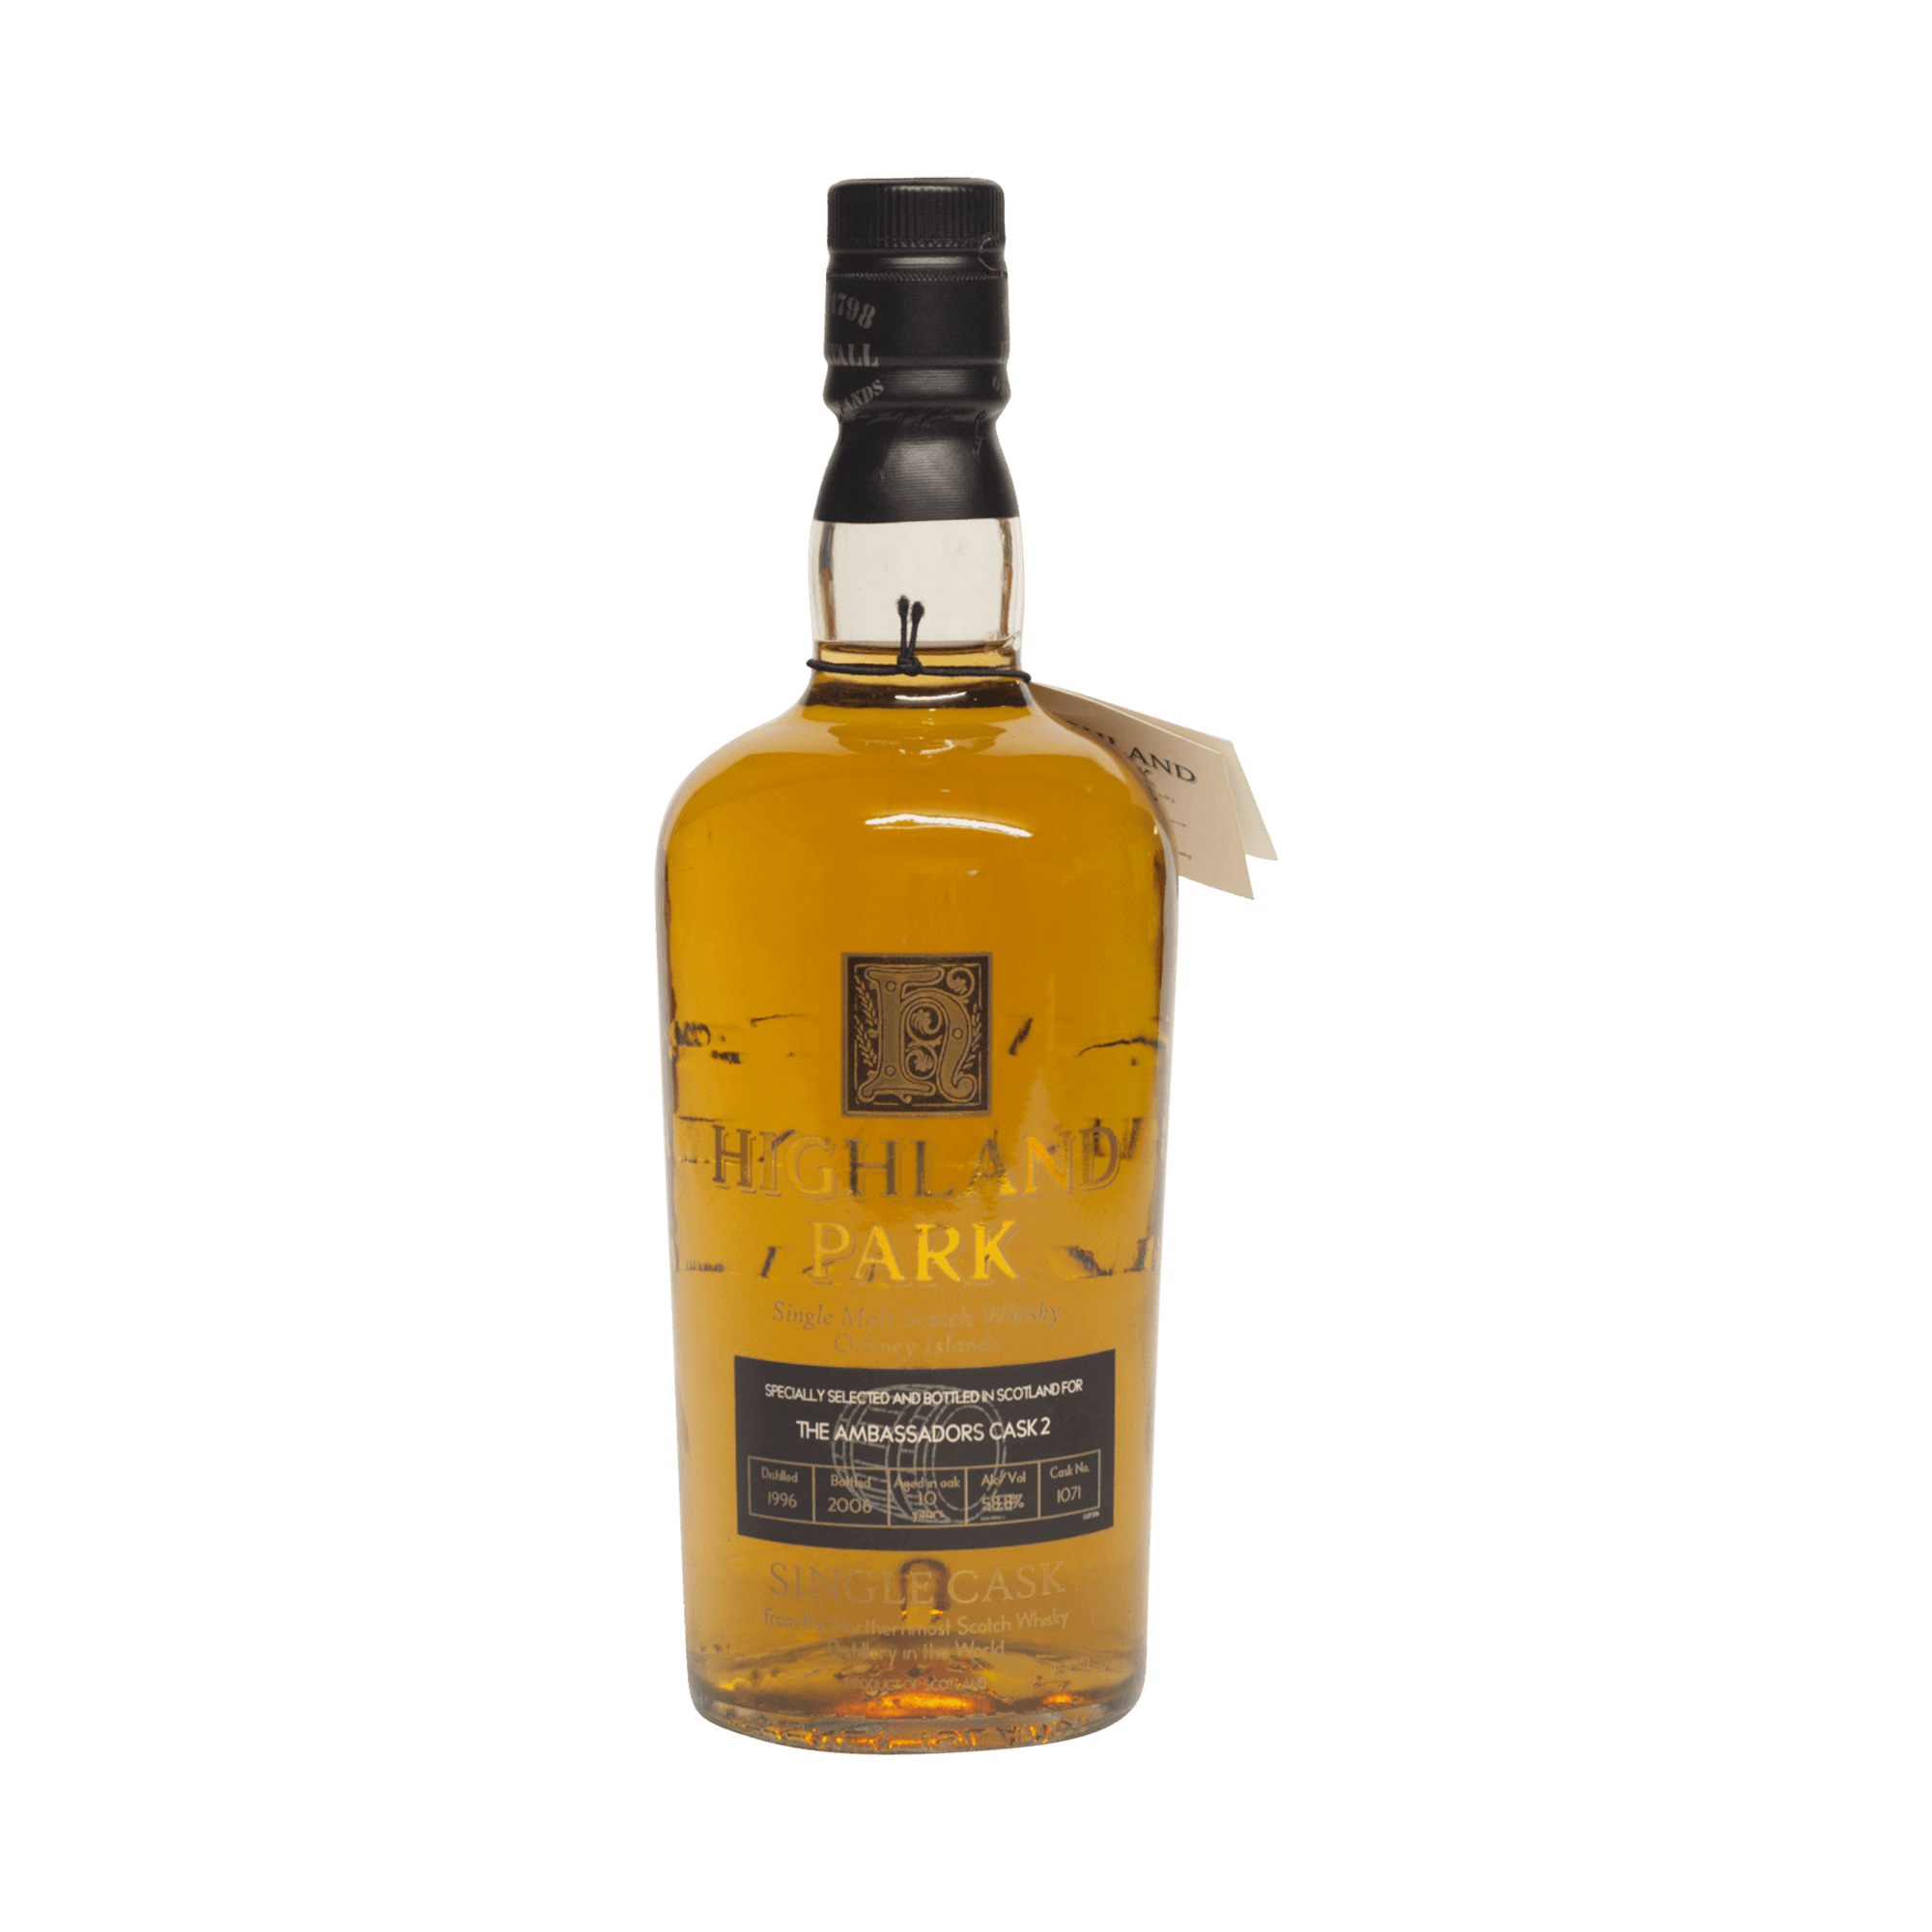 Highland Park 1996 10 Year Old 'The Ambassadors Cask' 58.80%